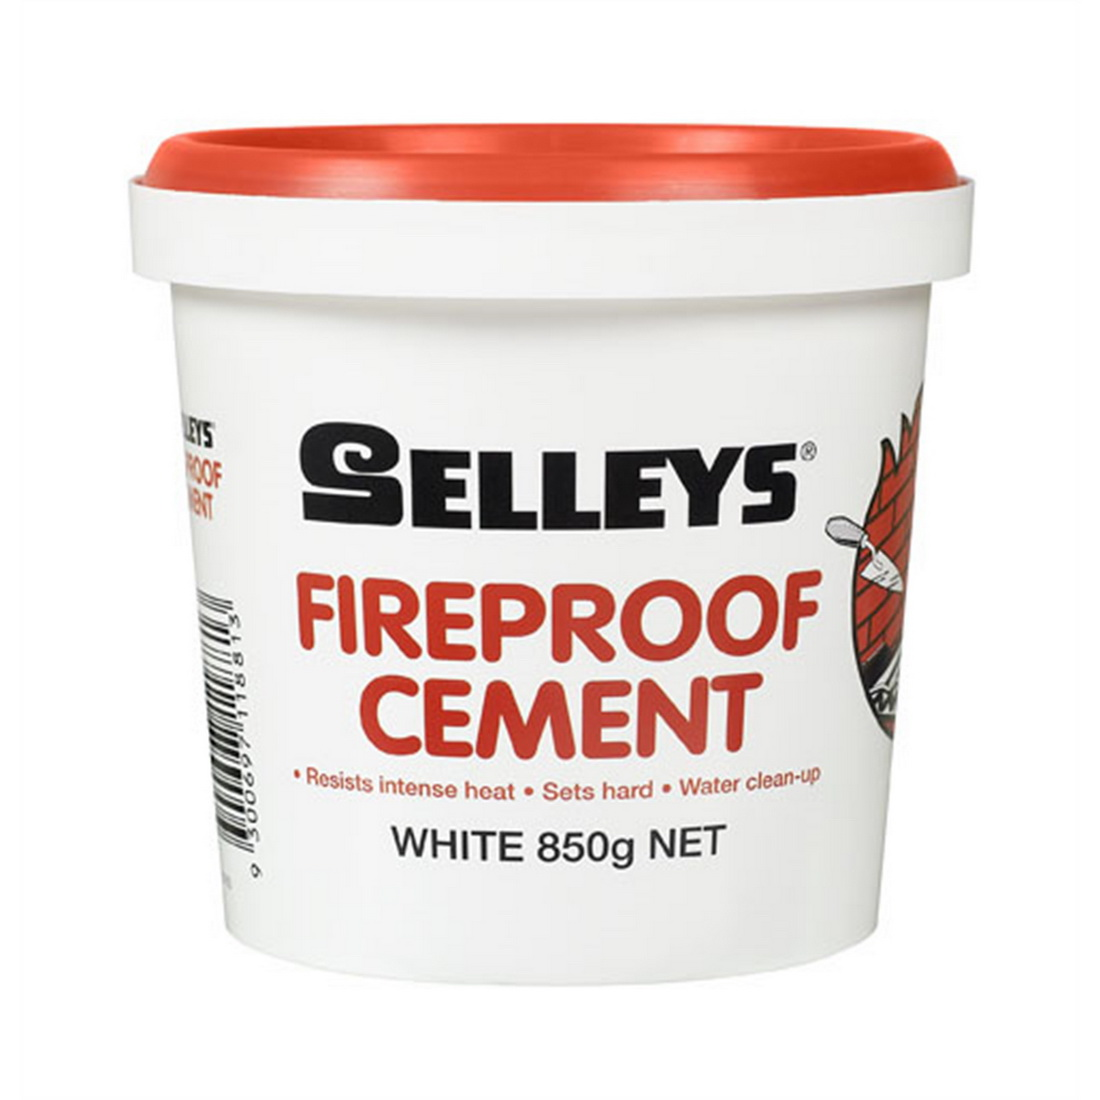 850g Ready-to-Use Fireproof Cement White